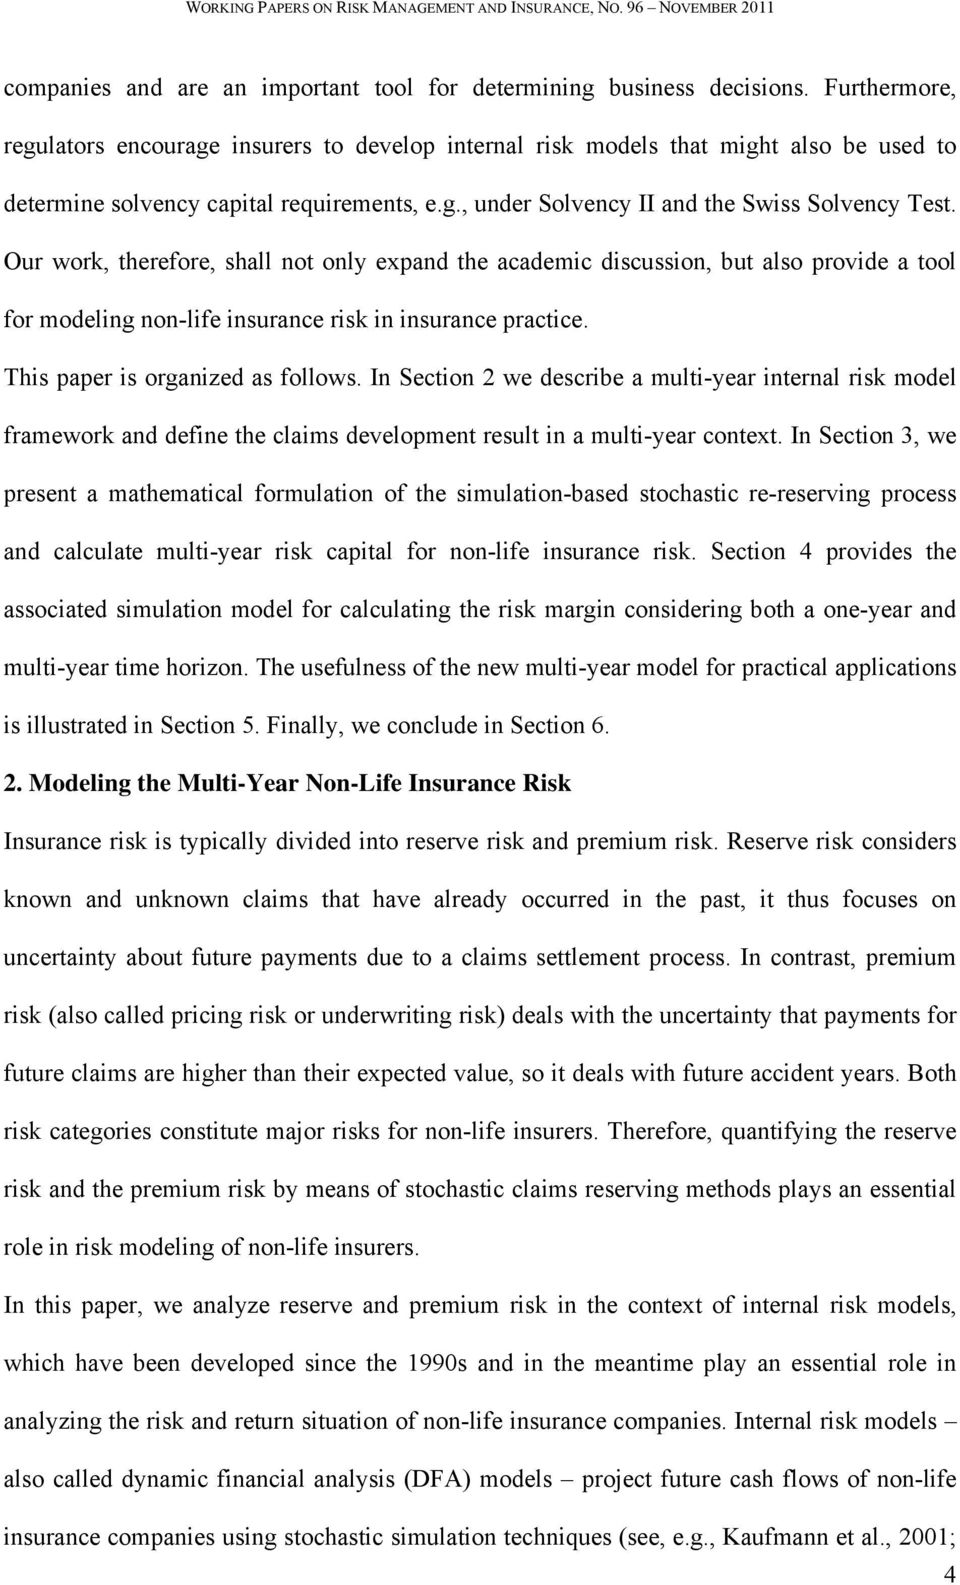 Our work, therefore, shall not only expand the academic discussion, but also provide a tool for modeling non-life insurance risk in insurance practice. This paper is organized as follows.